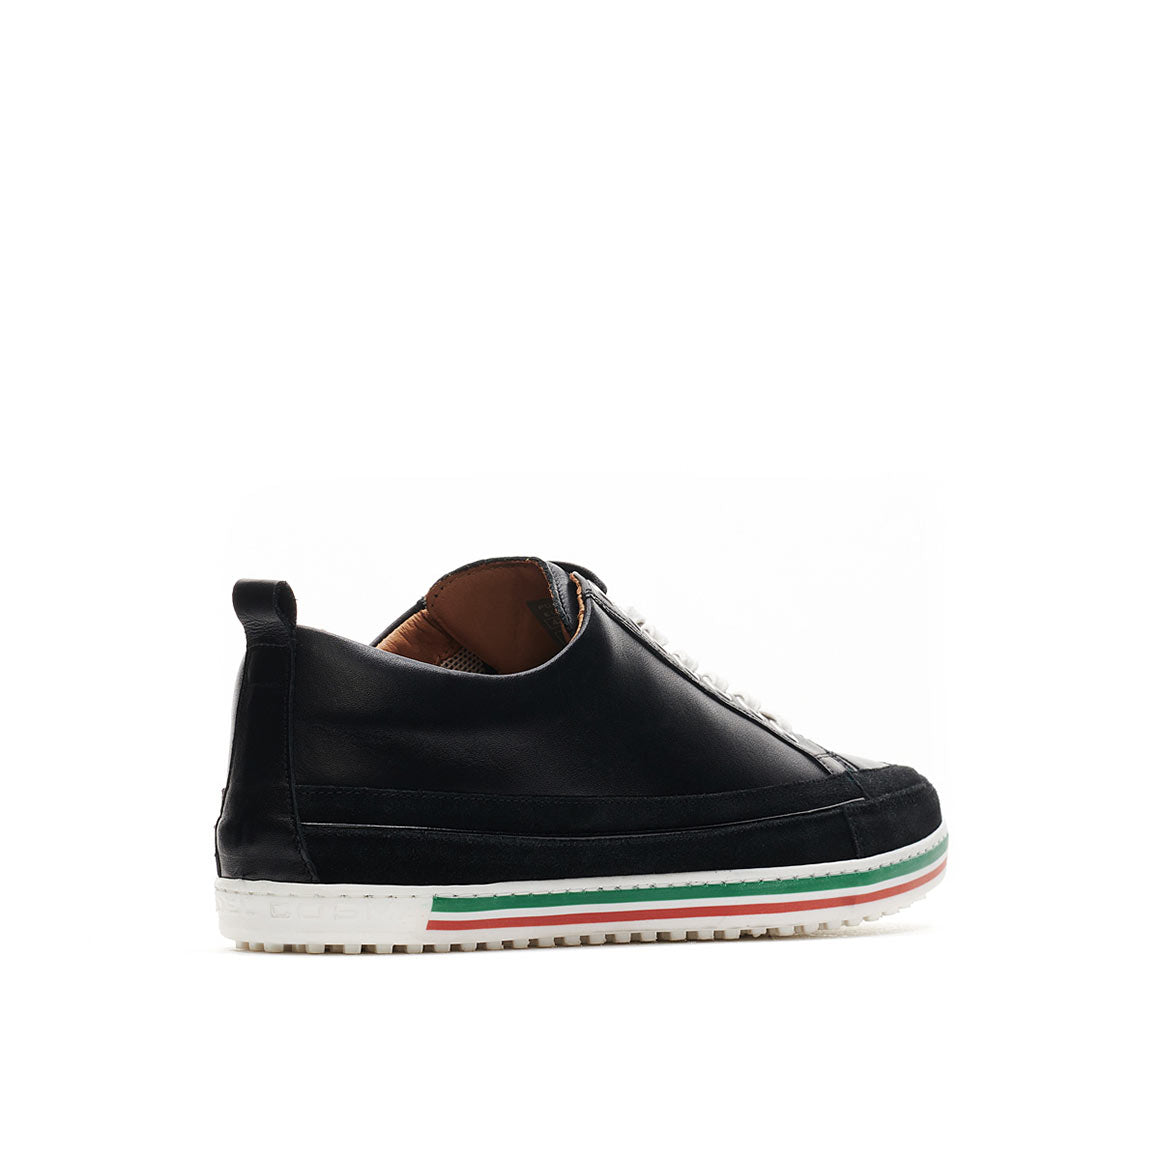 Men's Monterosso Black Shoe